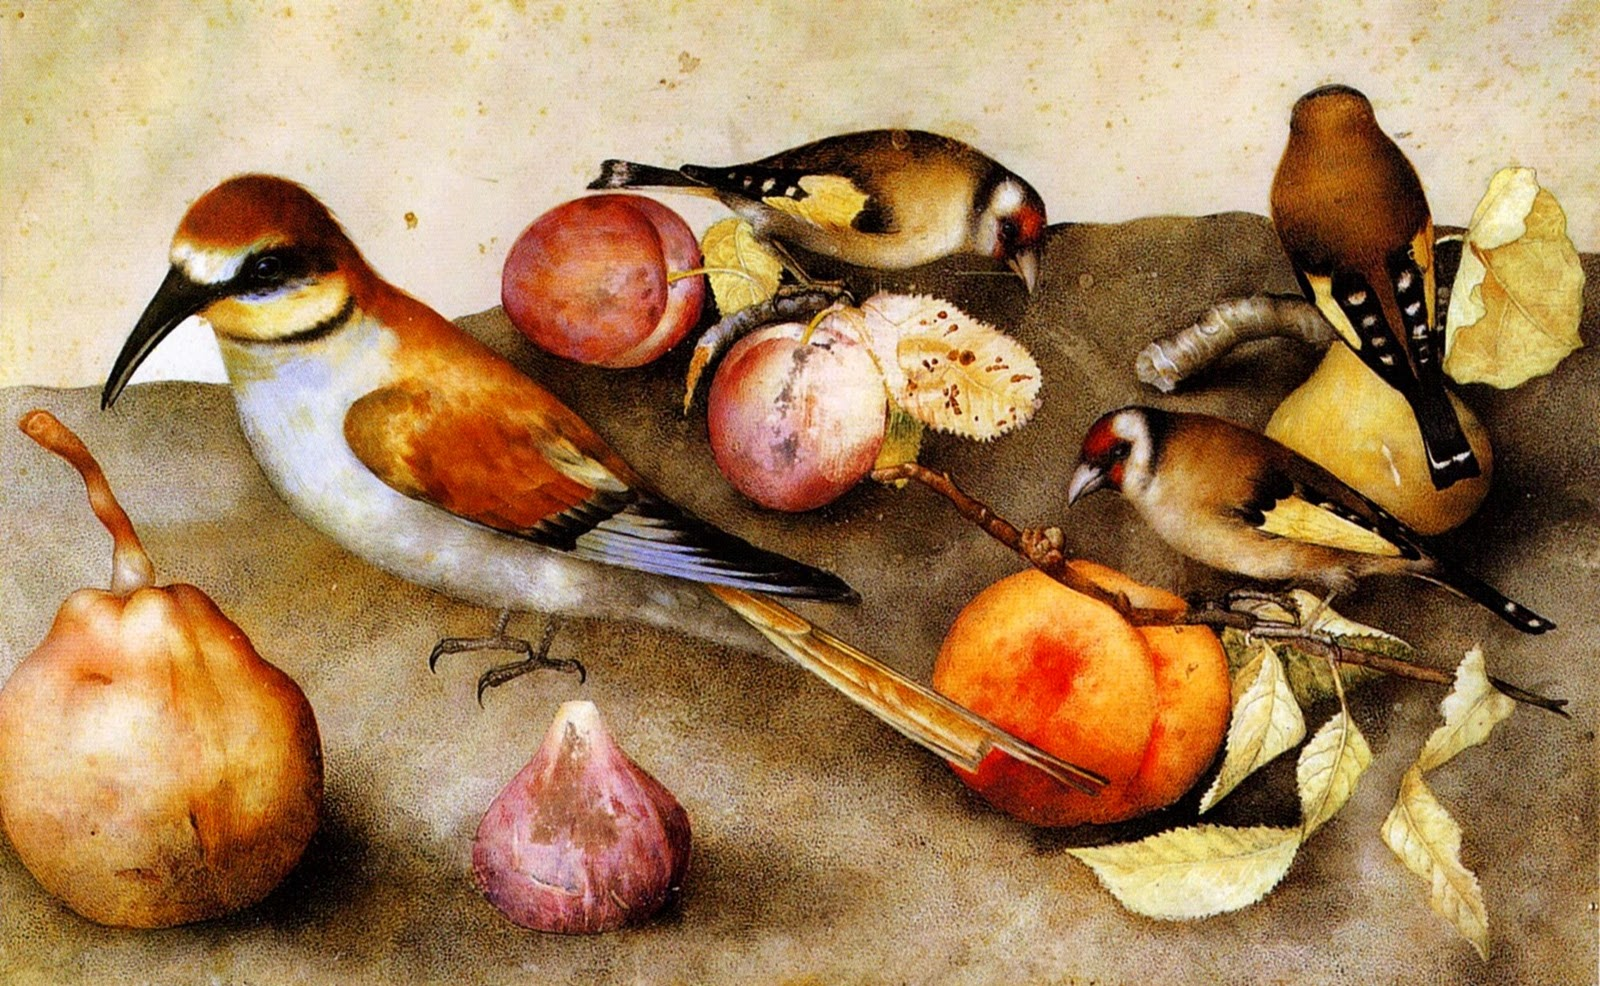 Giovanna Garzonni - A Baroque Still Life Painter